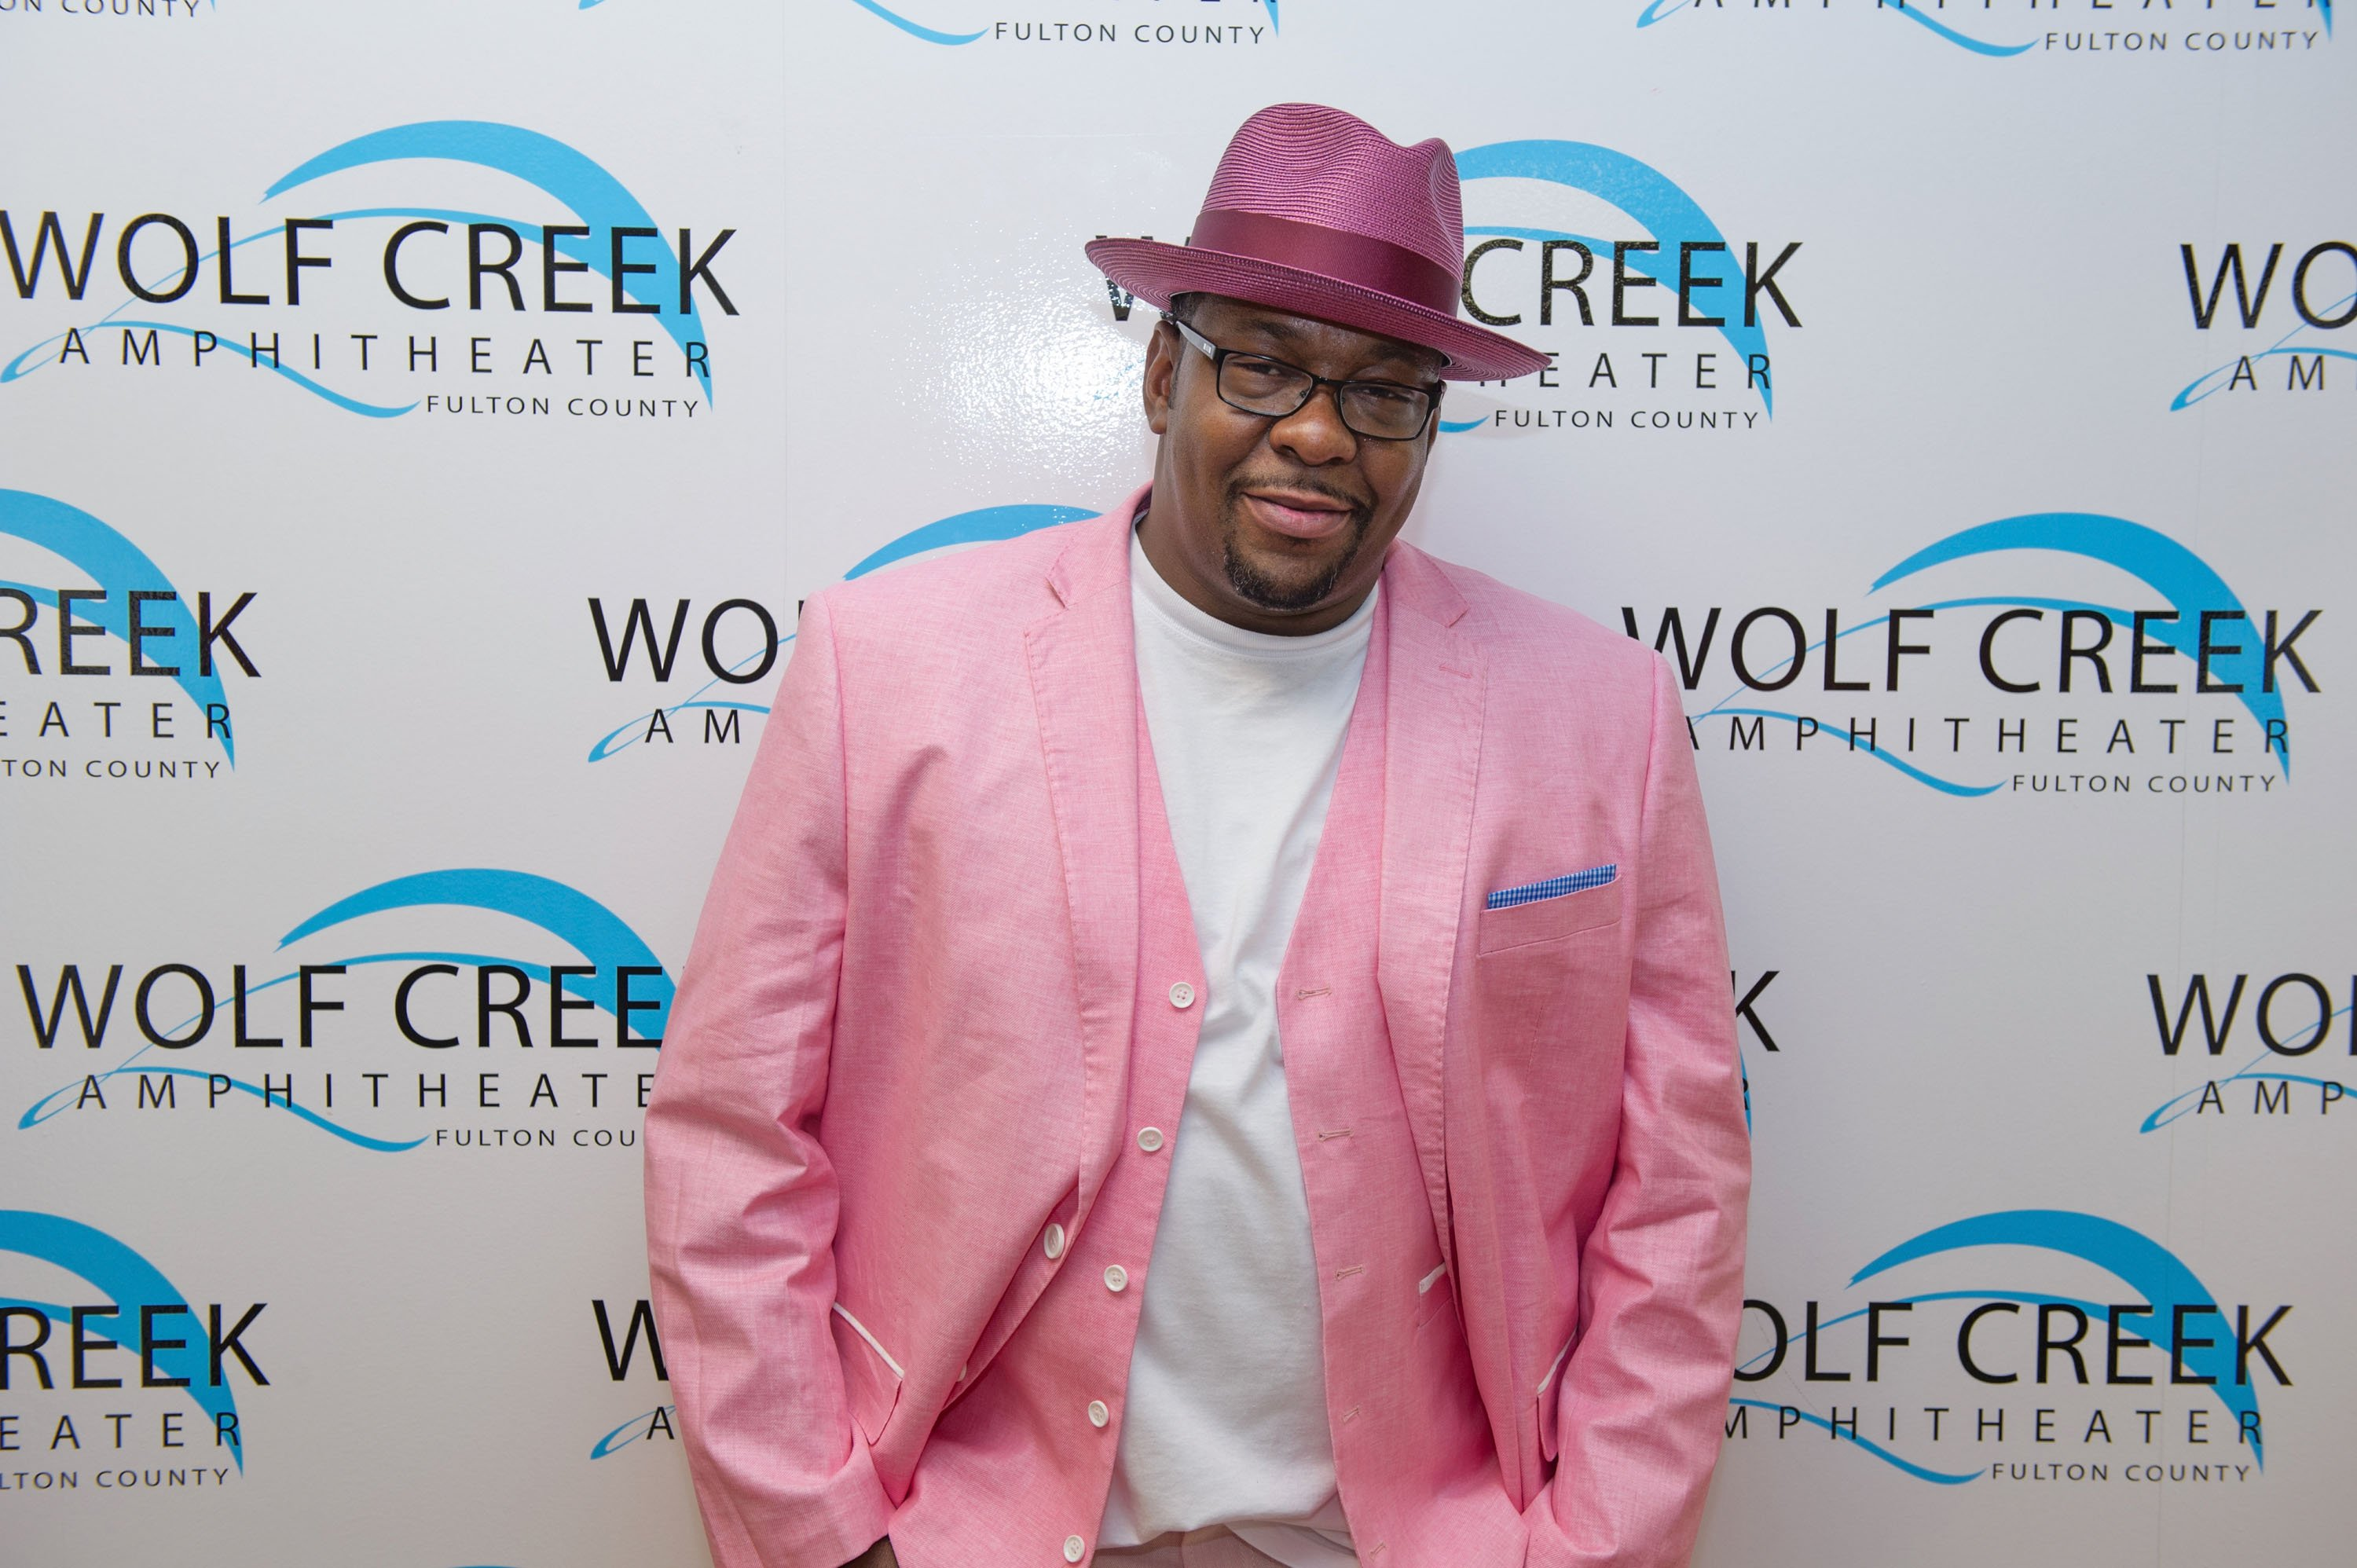 Bobby Brown attends the Affordable Old School Concert Series at Wolf Creek Amphitheater on July 4, 2015 in Atlanta, Georgia | Photo: Getty Images